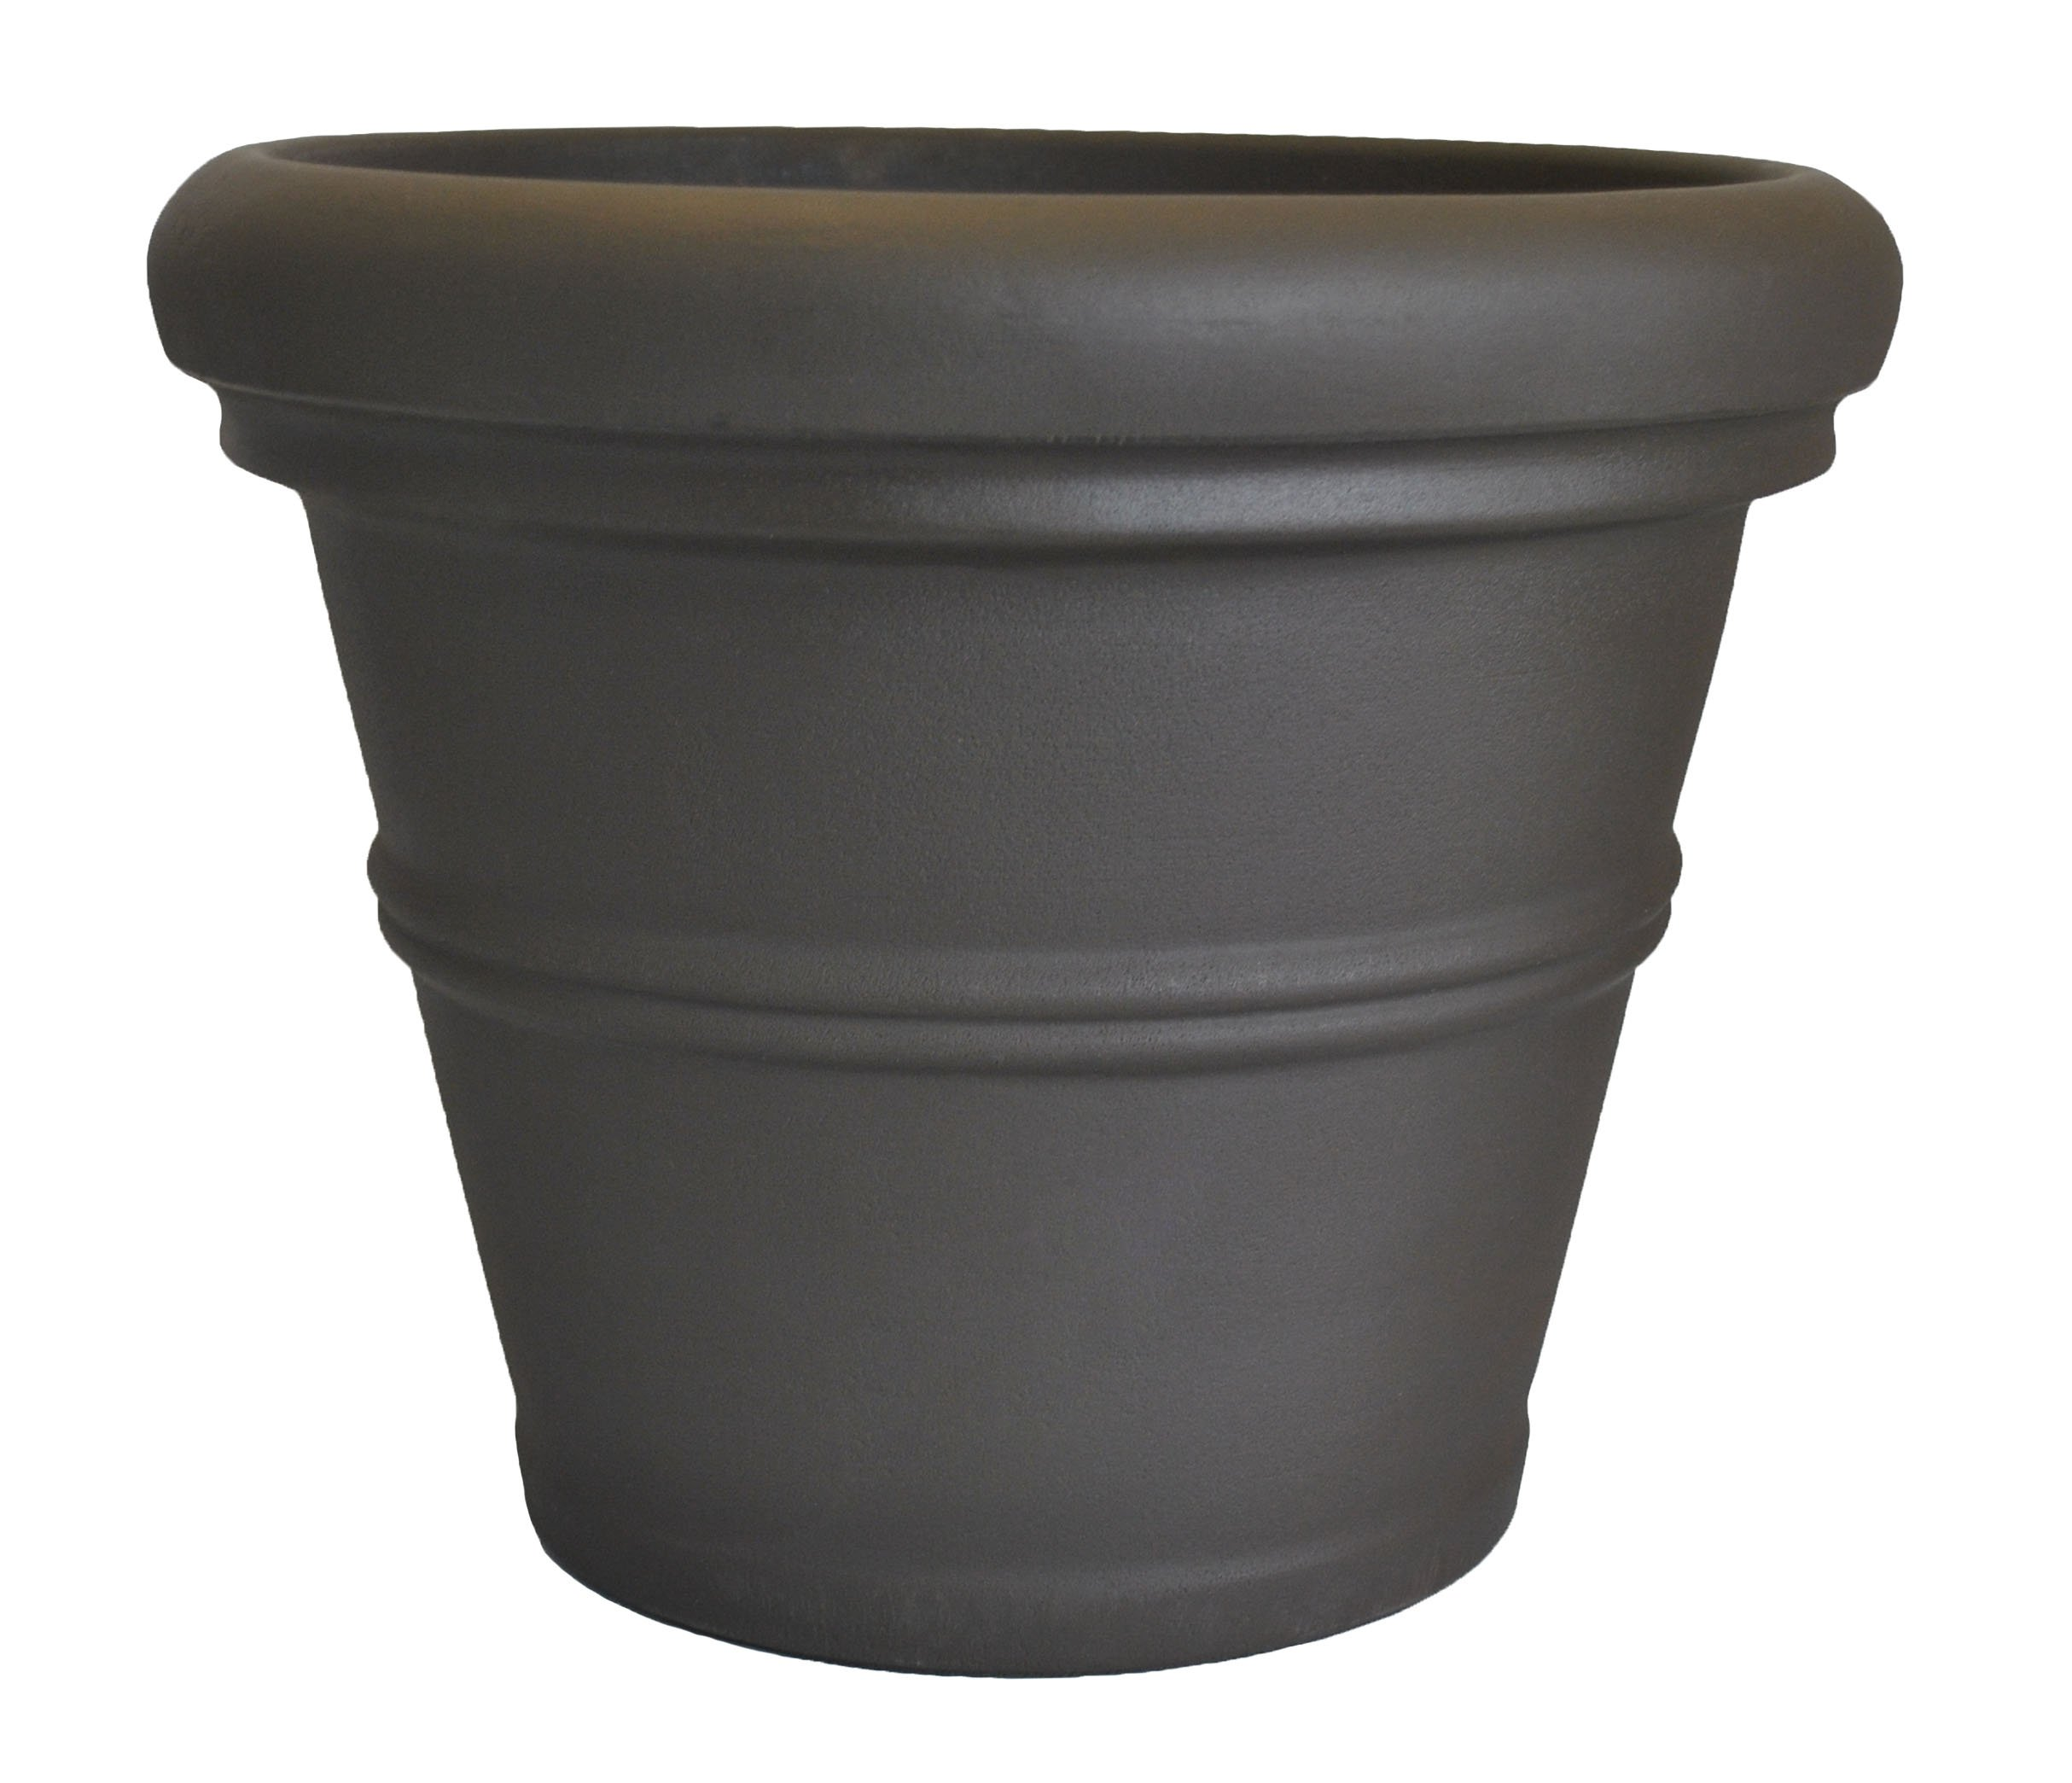 Tusco Products RR42ES Rolled Rim Garden Pot, 42-Inch, Espresso by Tusco Products